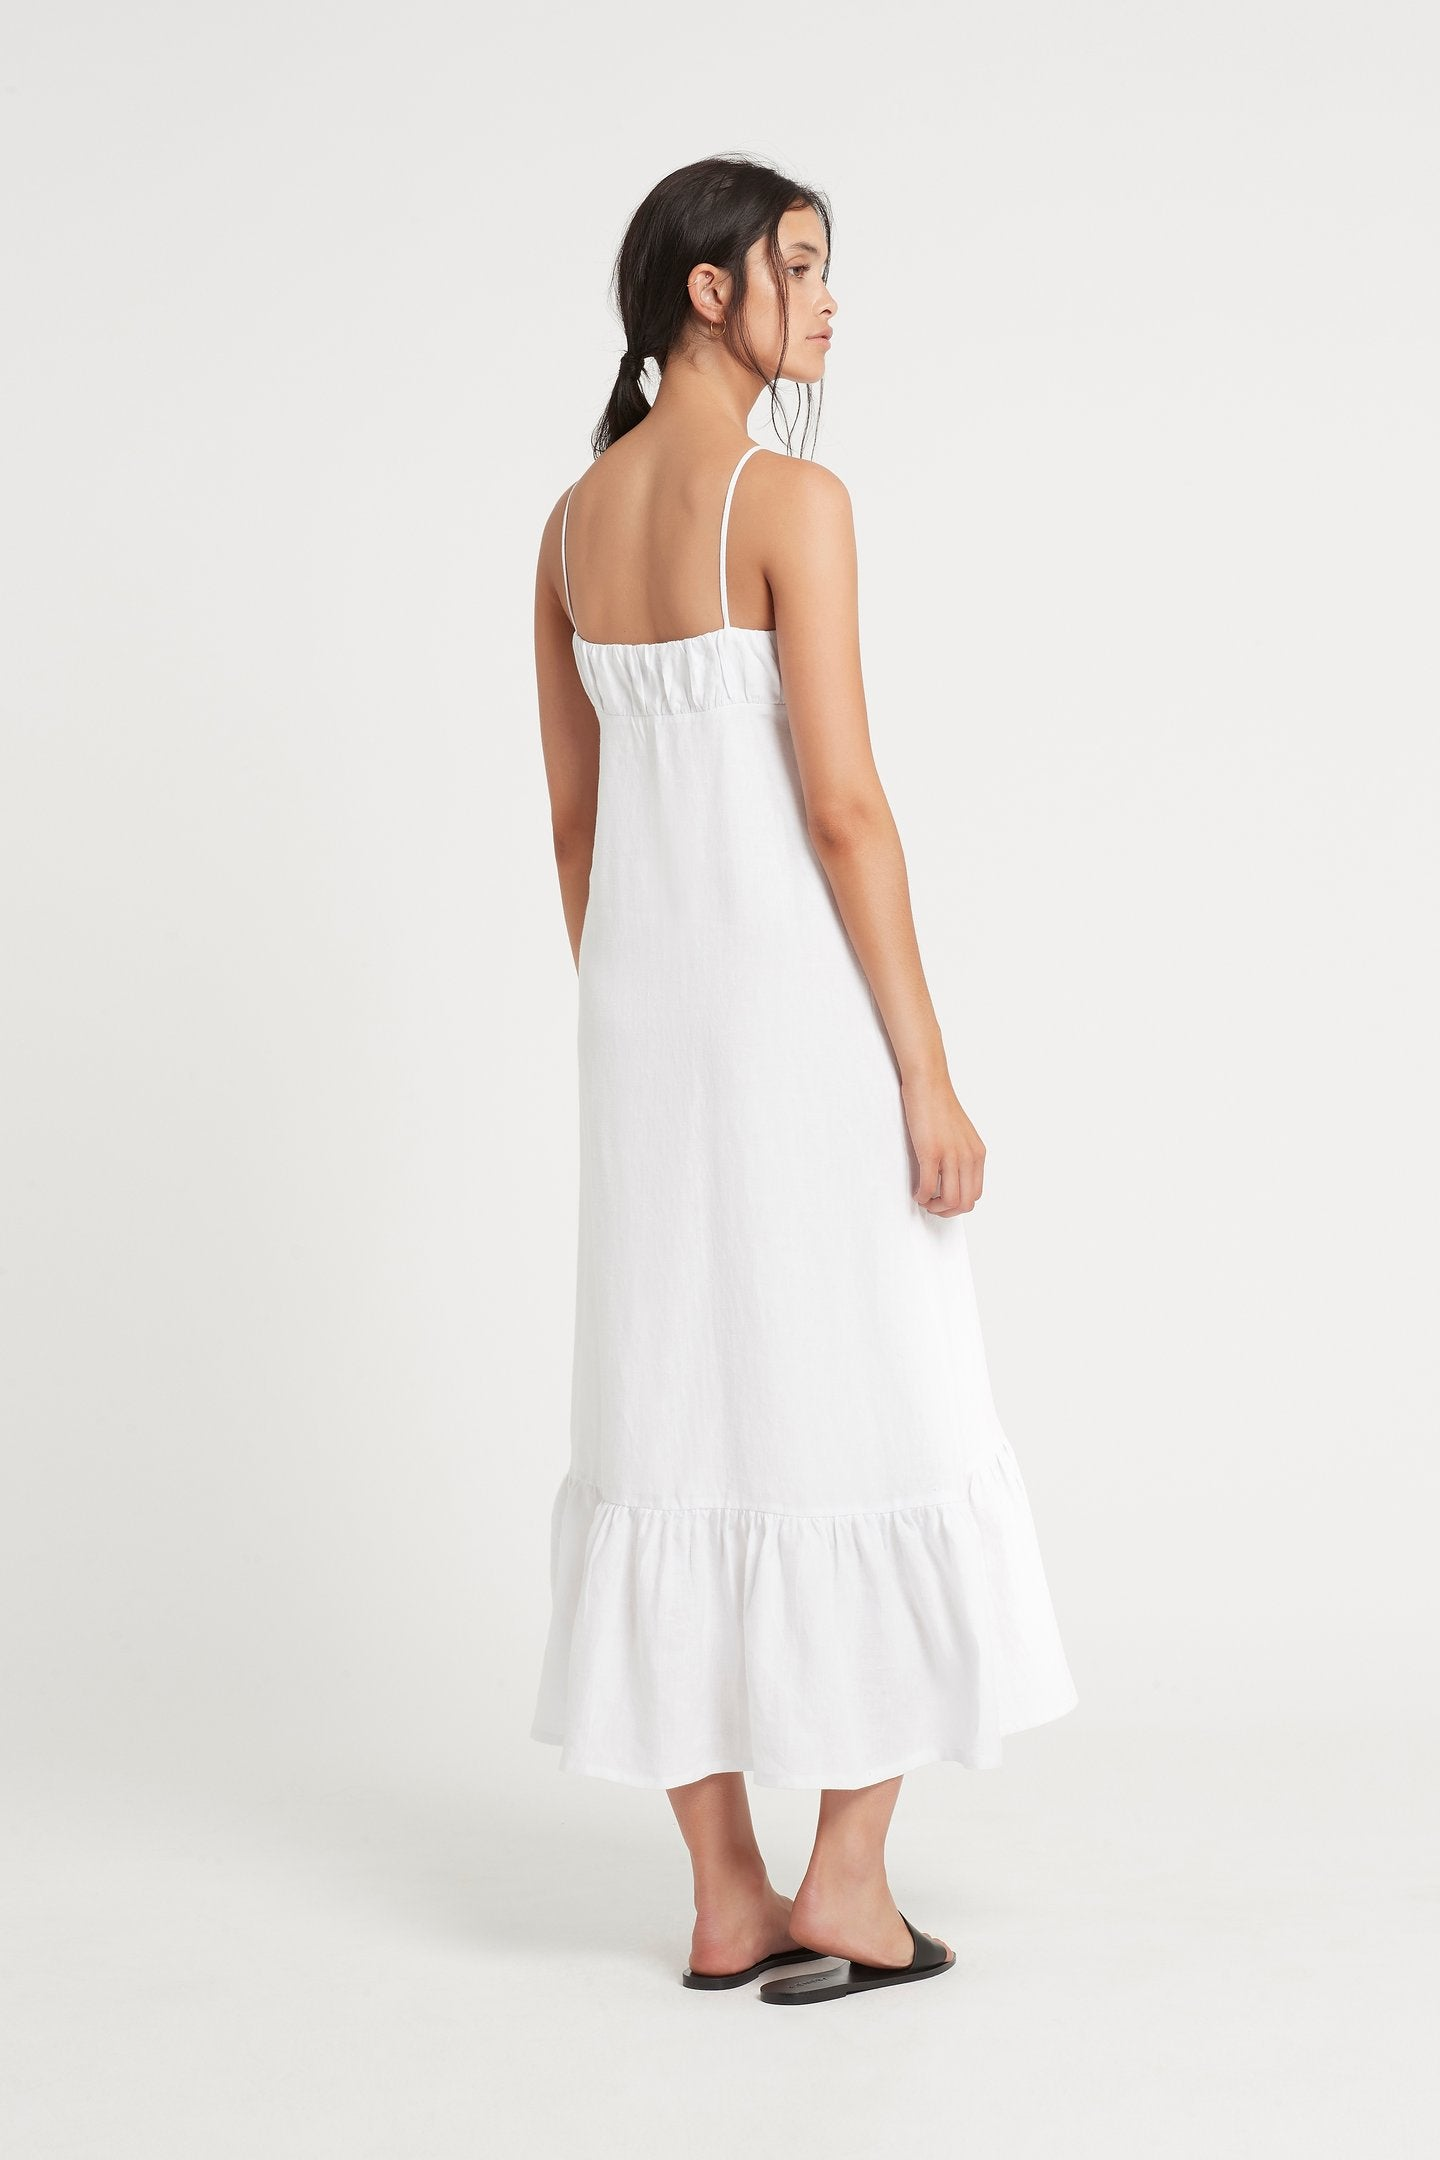 SIR The Label Anouk Tie Maxi Dress